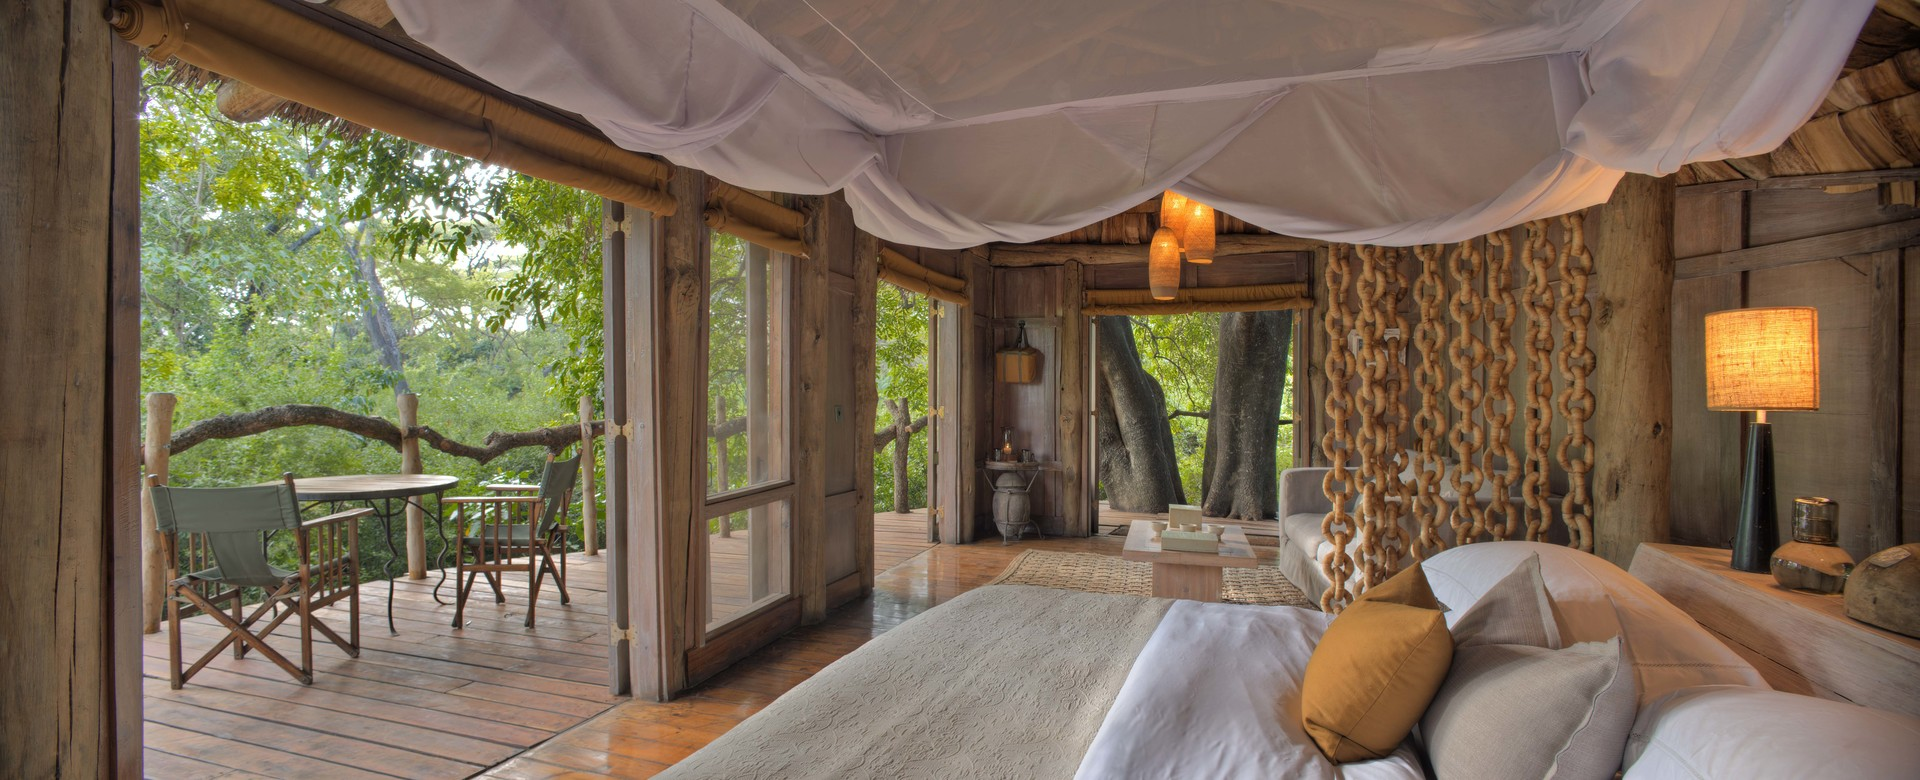 Manyara Tree Lodge 2014-2.jpg